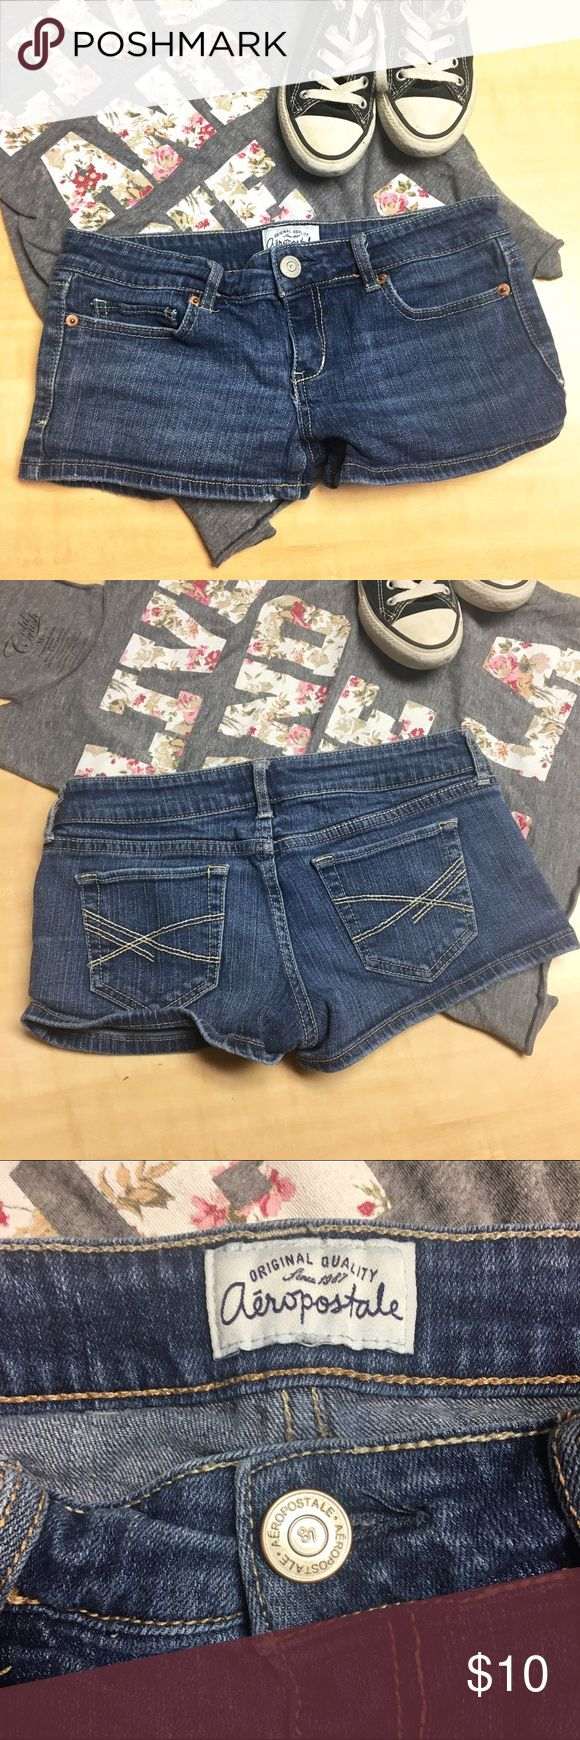 Aeropostale Denim Shorts Size 3/4 - preloved good condition. Only flaw is some fraying on the right legs opening, but it adds character 😝 Bundle & Save!! Aeropostale Shorts Jean Shorts